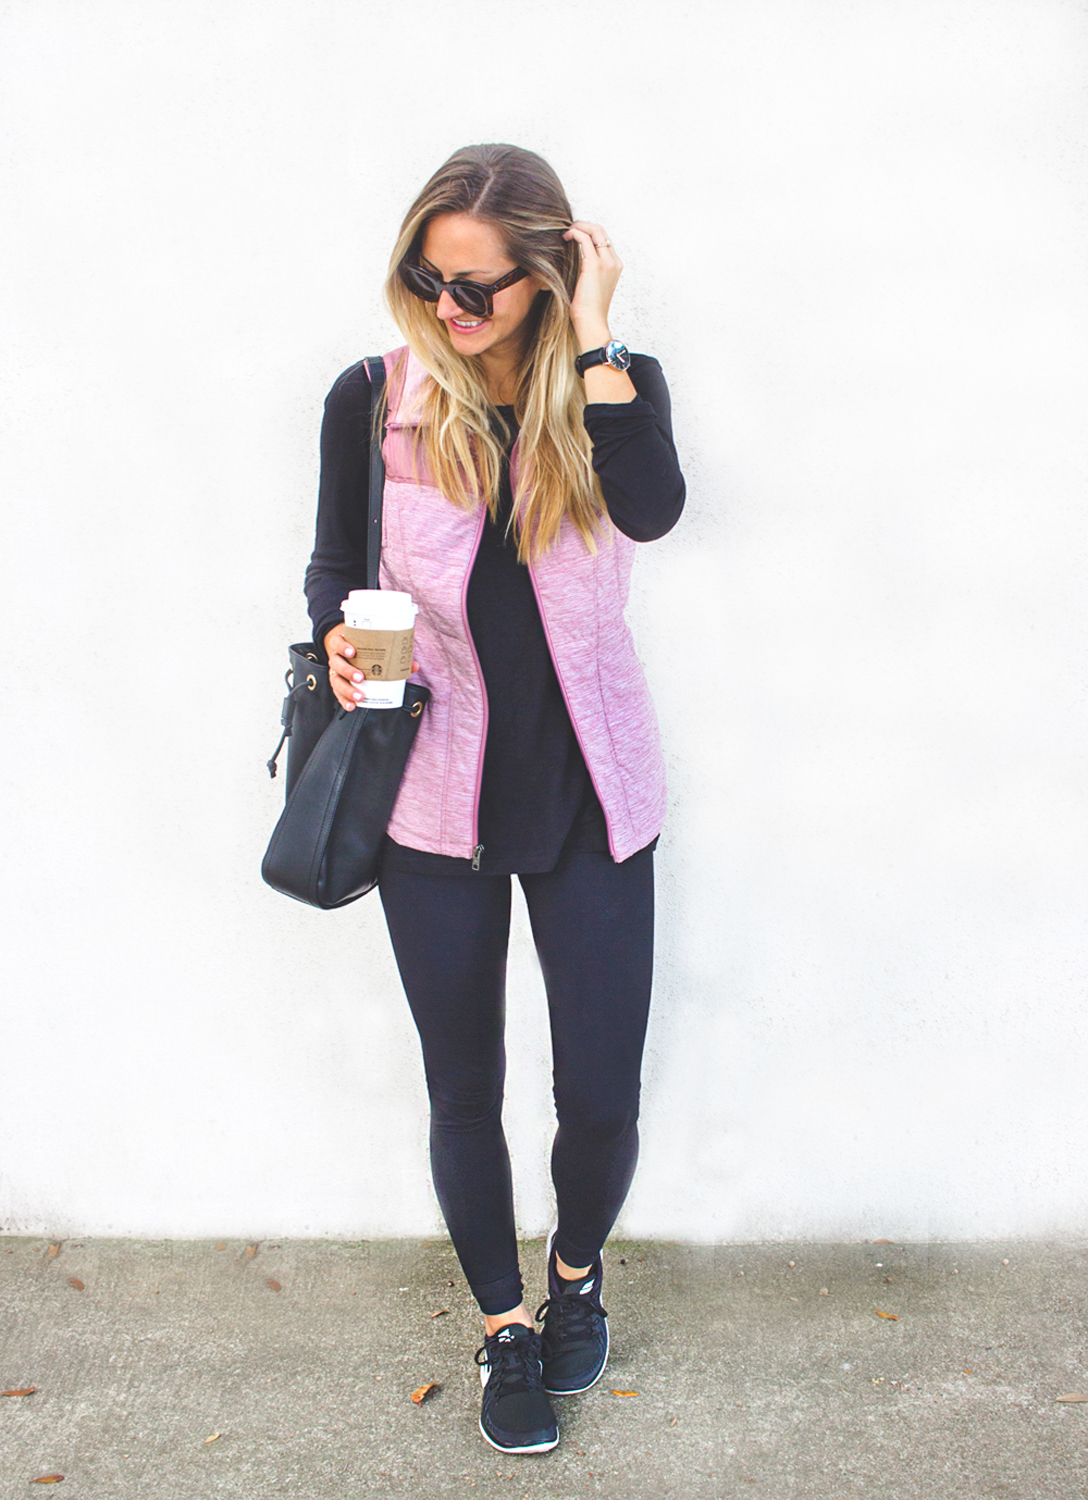 north-face-pseudio-vest-puffer-cozy-winter-lilac-olivia-watson-nordstrom-outdoor-outfit-1